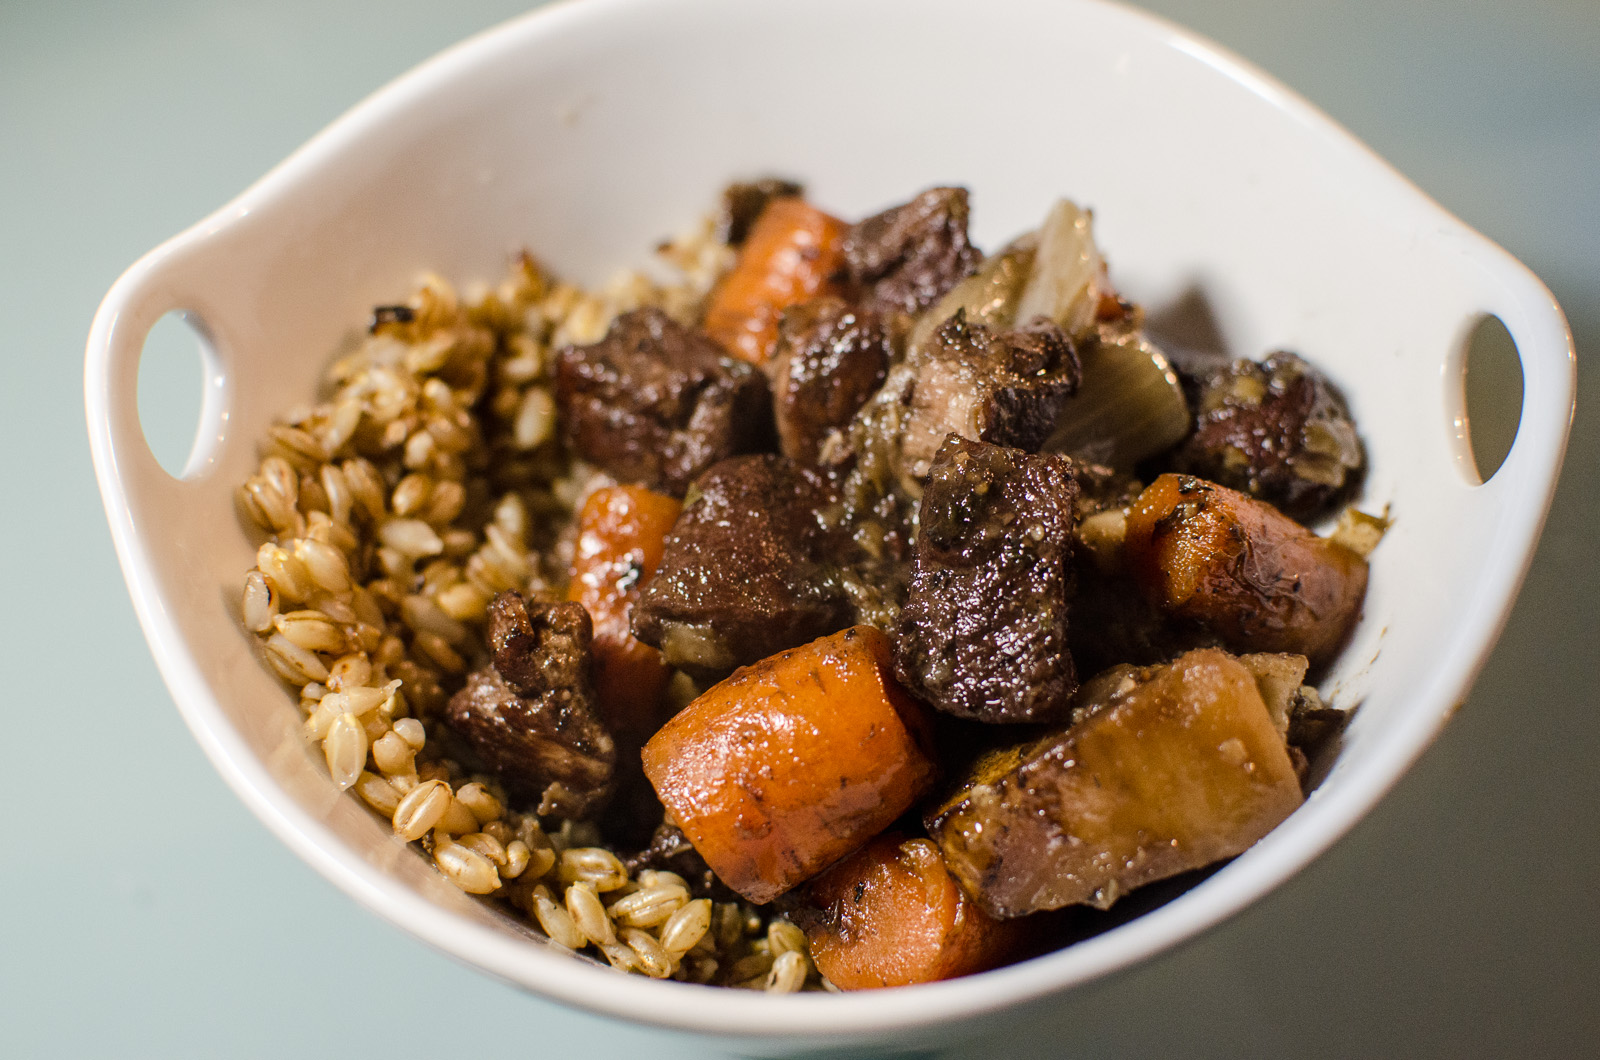 A bowl of Smith Meadows lamb stew with barley